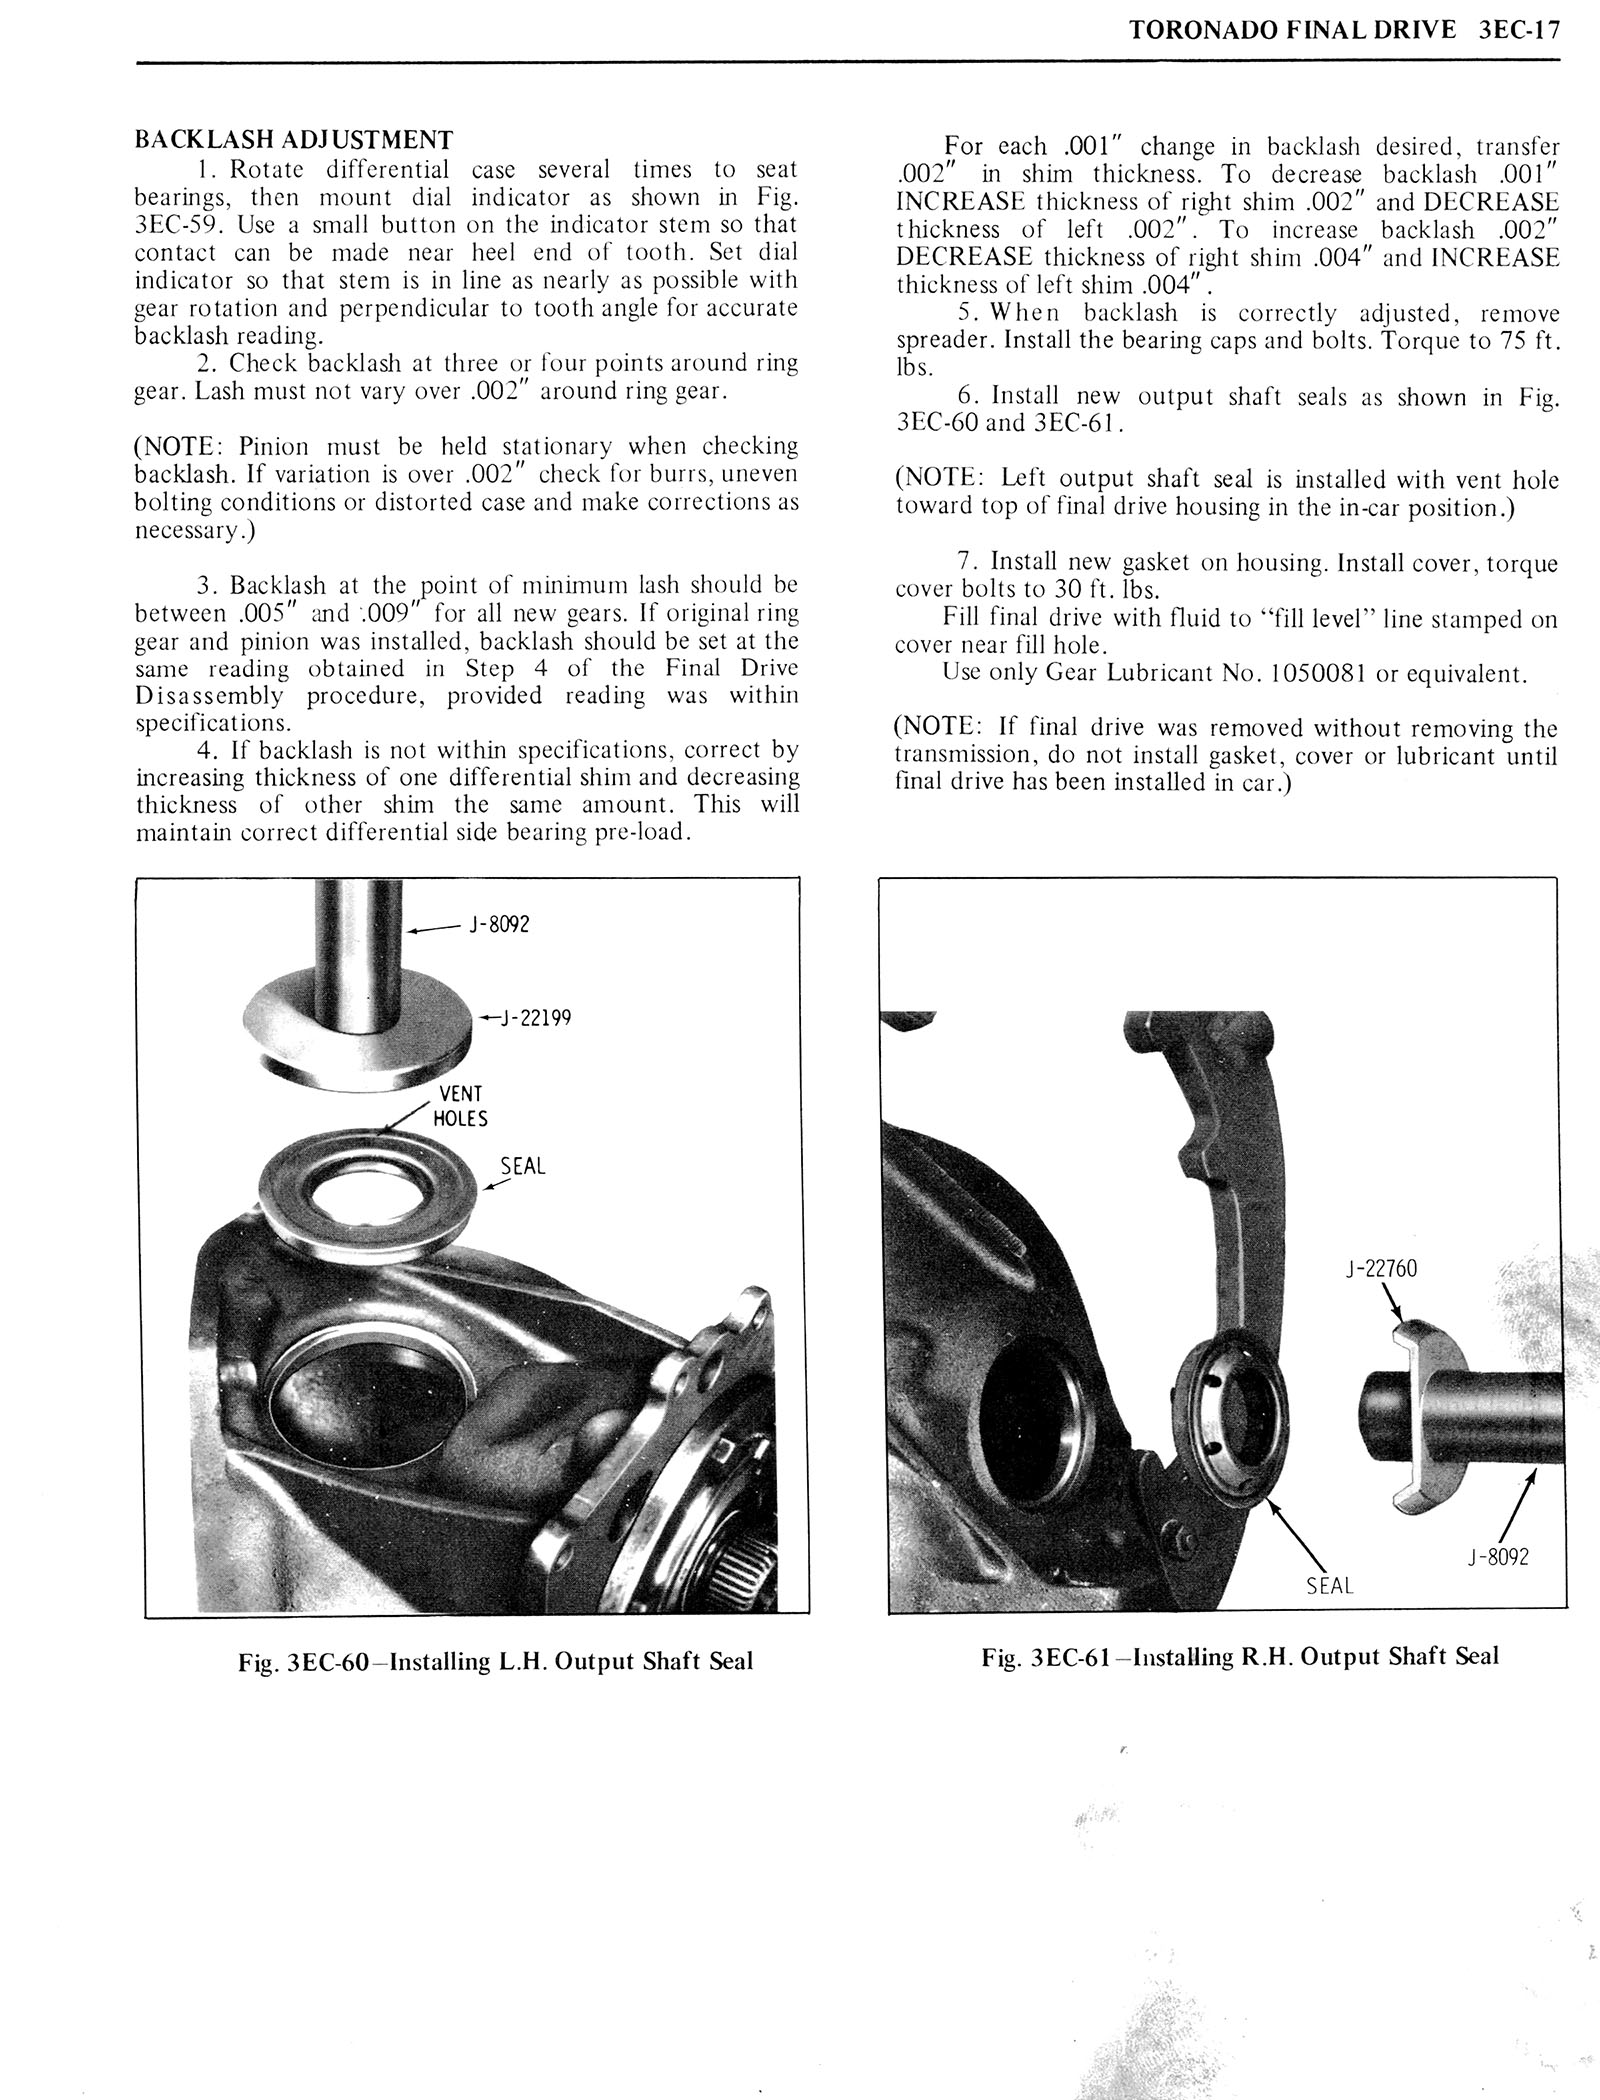 1976 Oldsmobile Service Manual page 253 of 1390